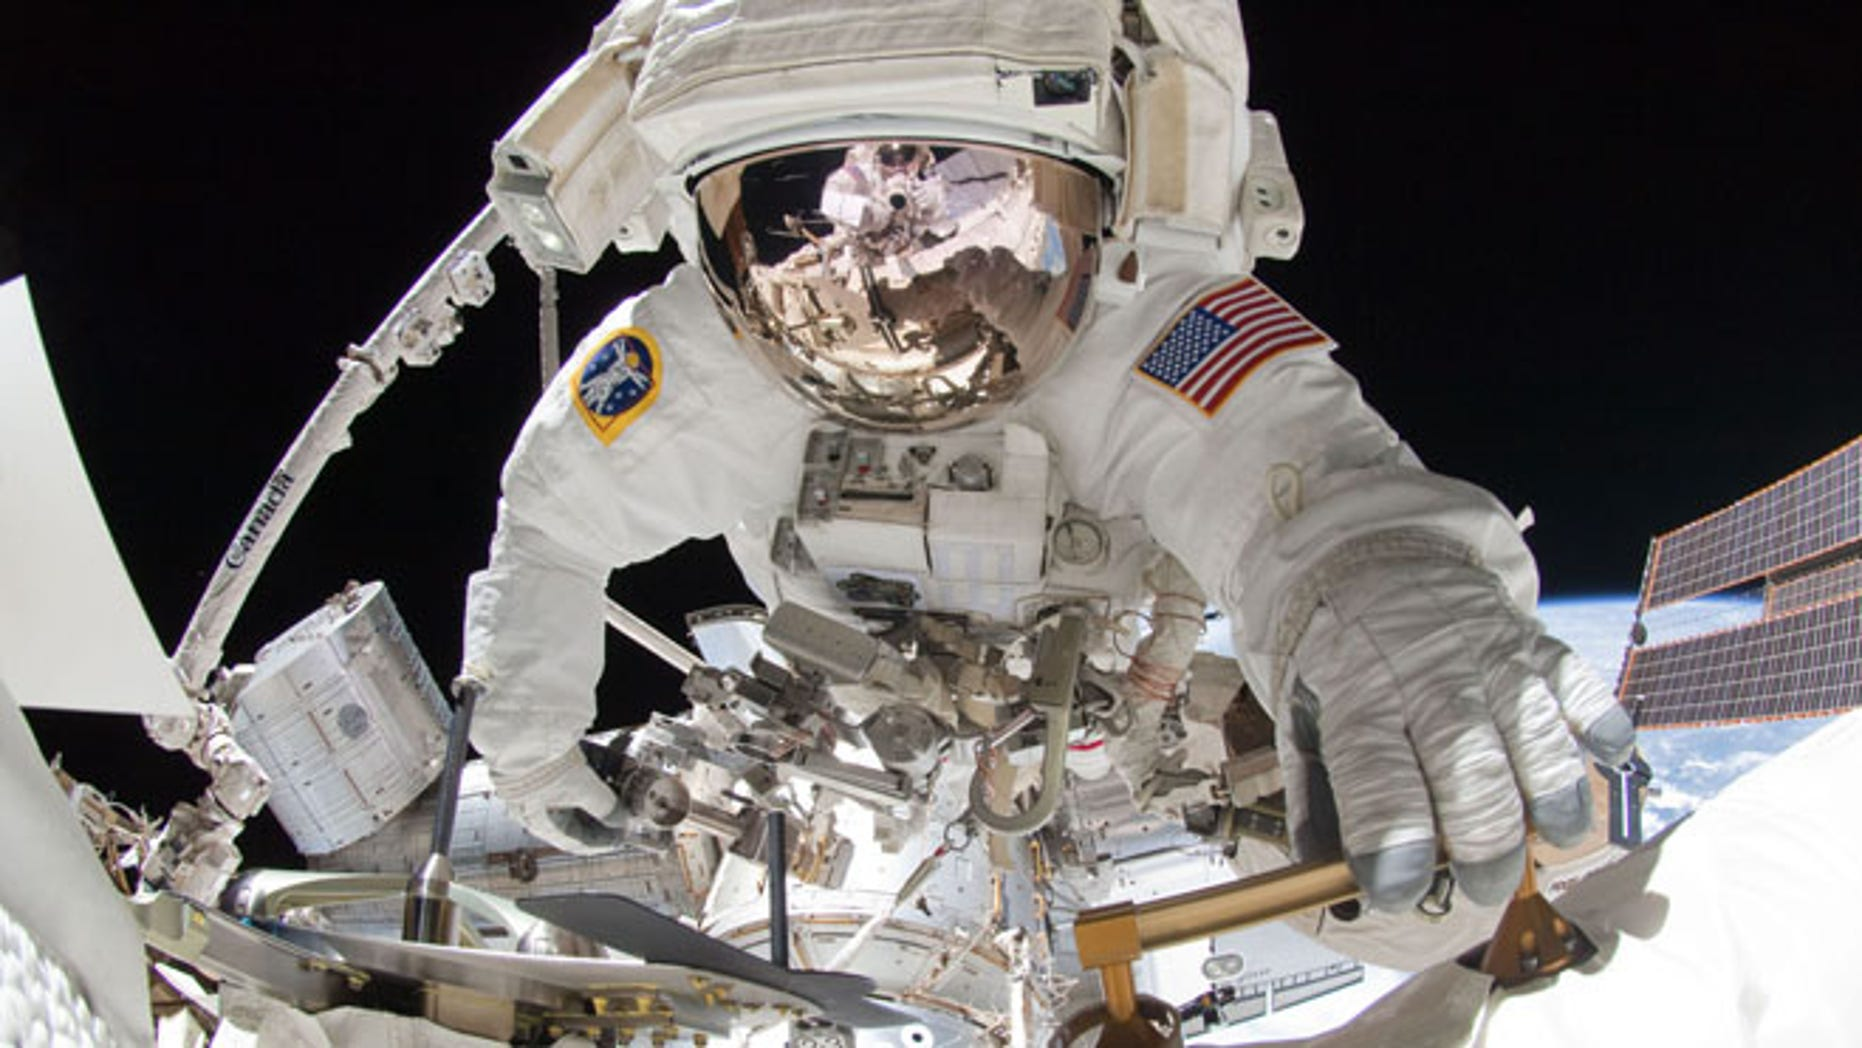 NASA astronaut Greg Chamitoff takes center stage in this amazing spacewalk photo taken by crewmate Mike Fincke (visible in the reflection on Chamitoff's spacesuit visor) using a fish-eye lens and digital camera during a May 27, 2011 excursion outside the International Space Station.